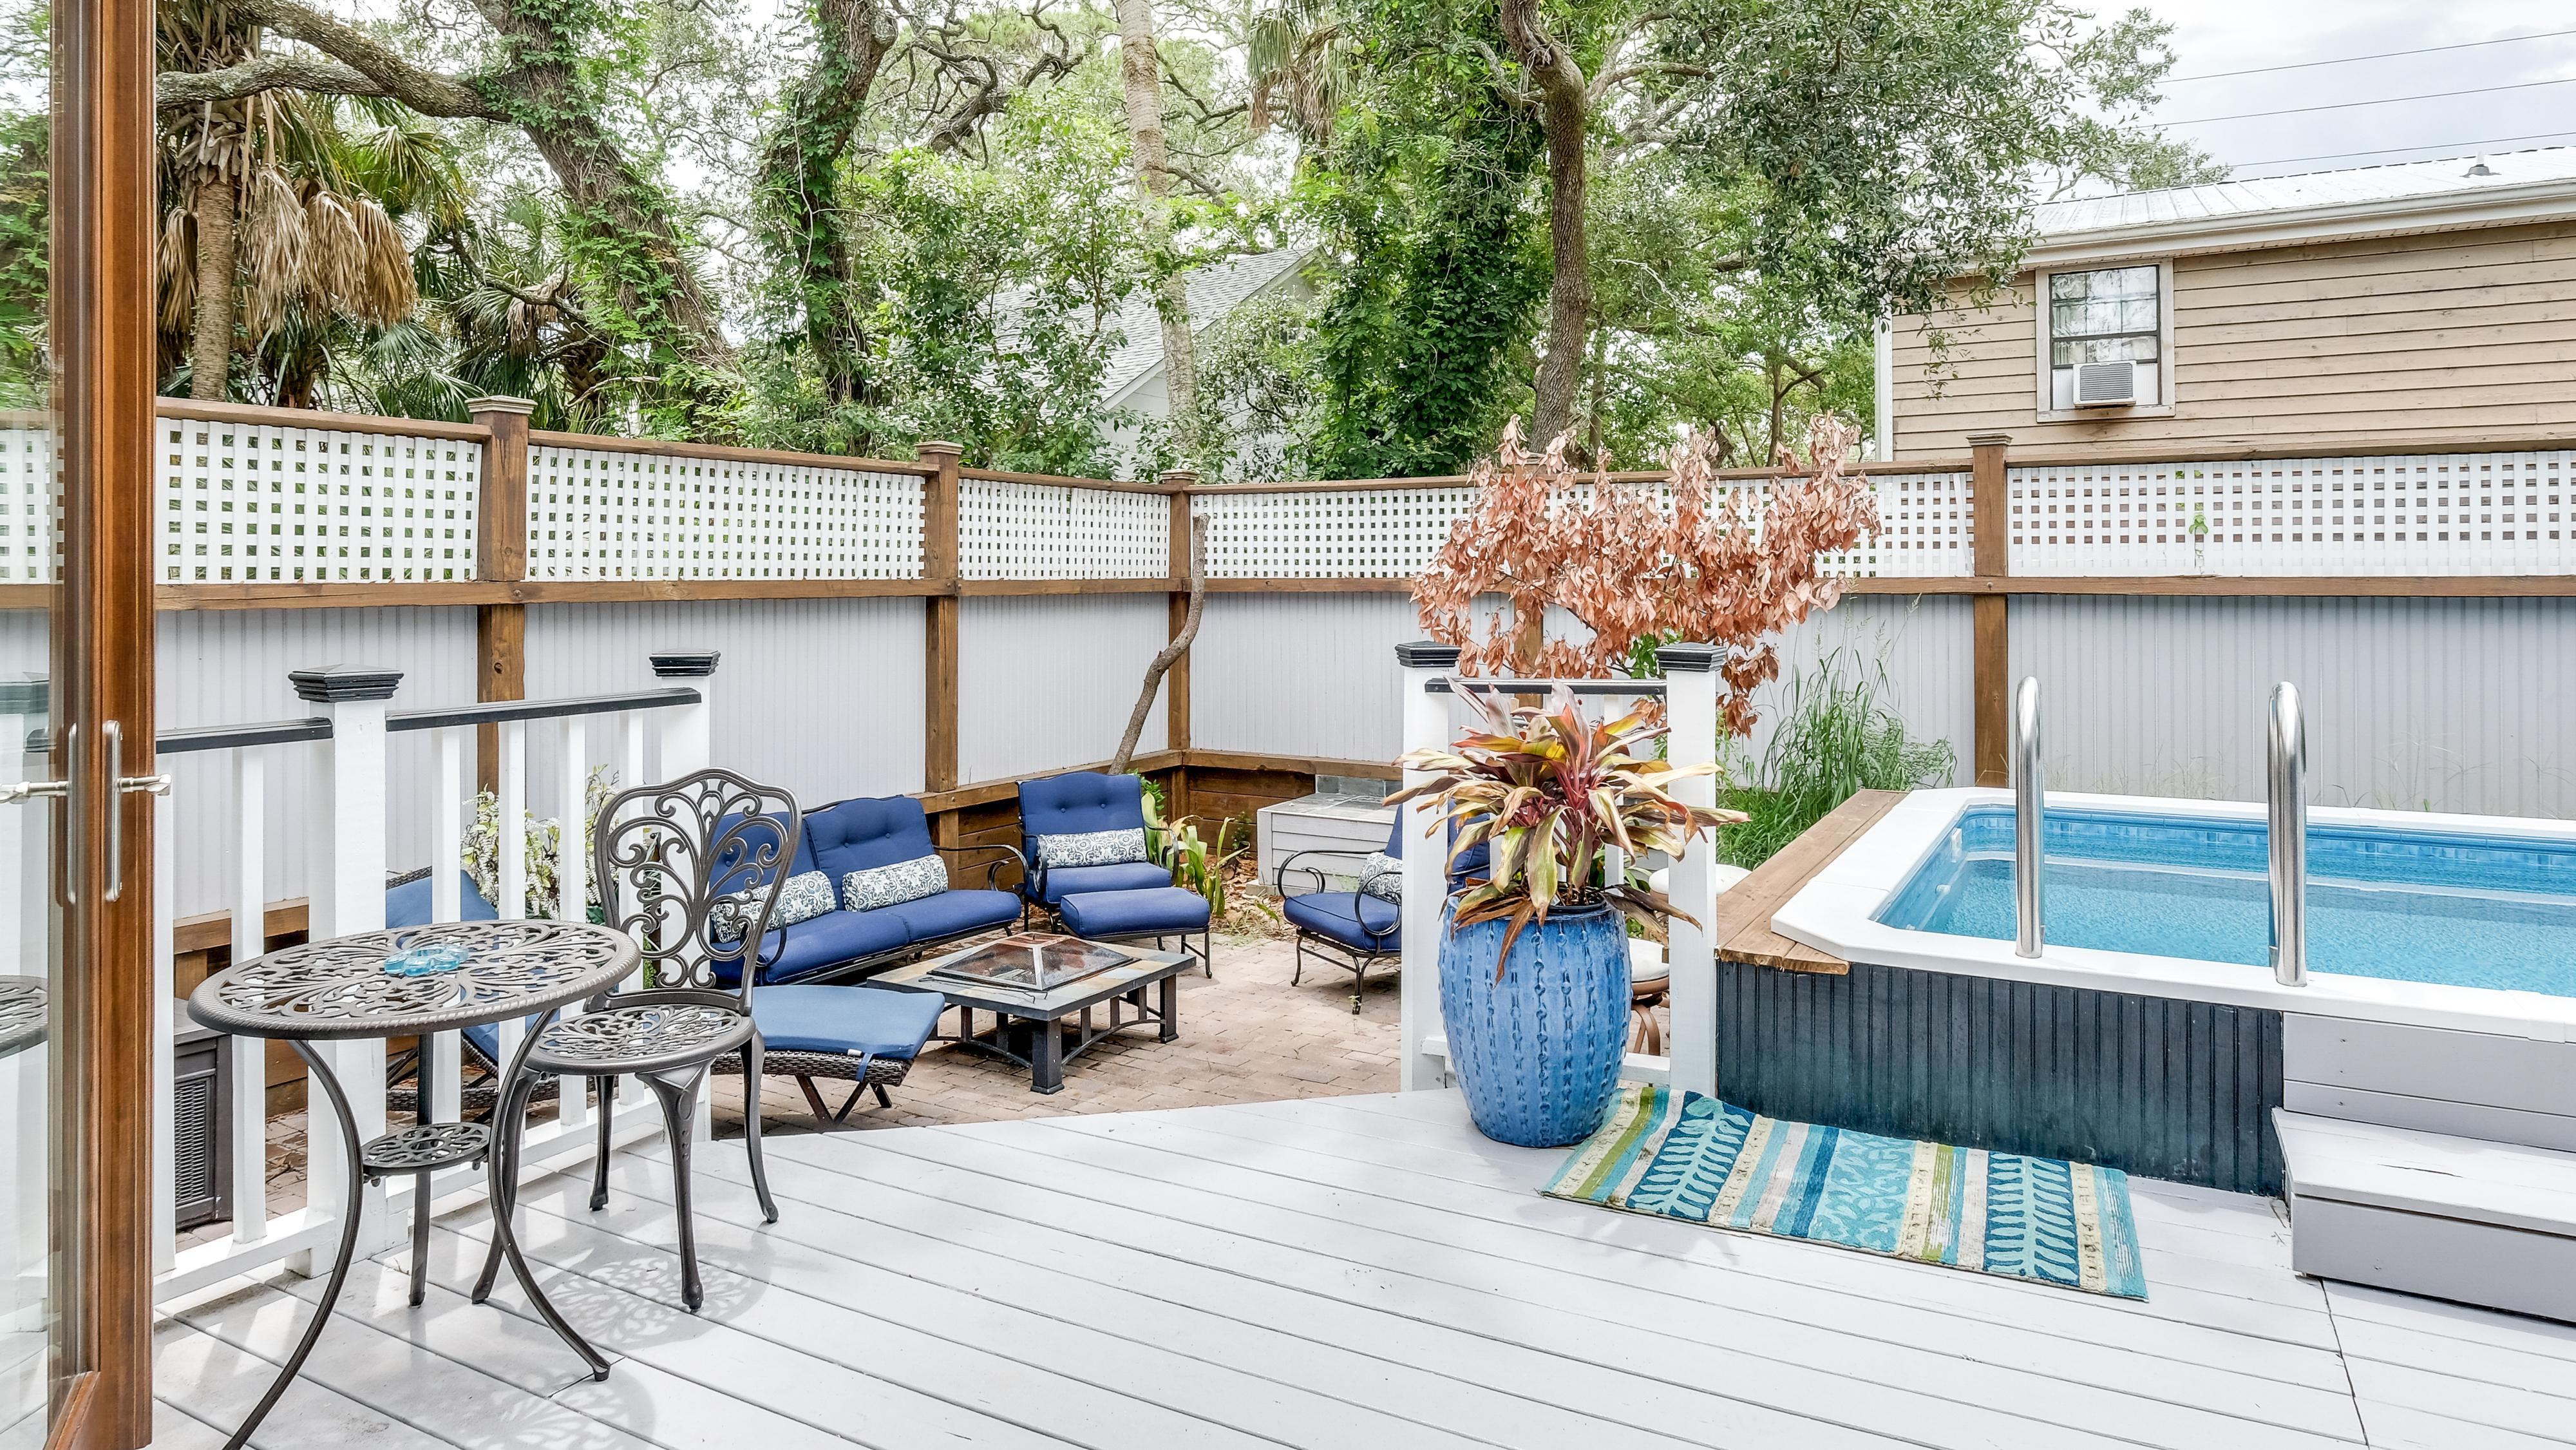 Back patio with pool, fire pit, and seating.